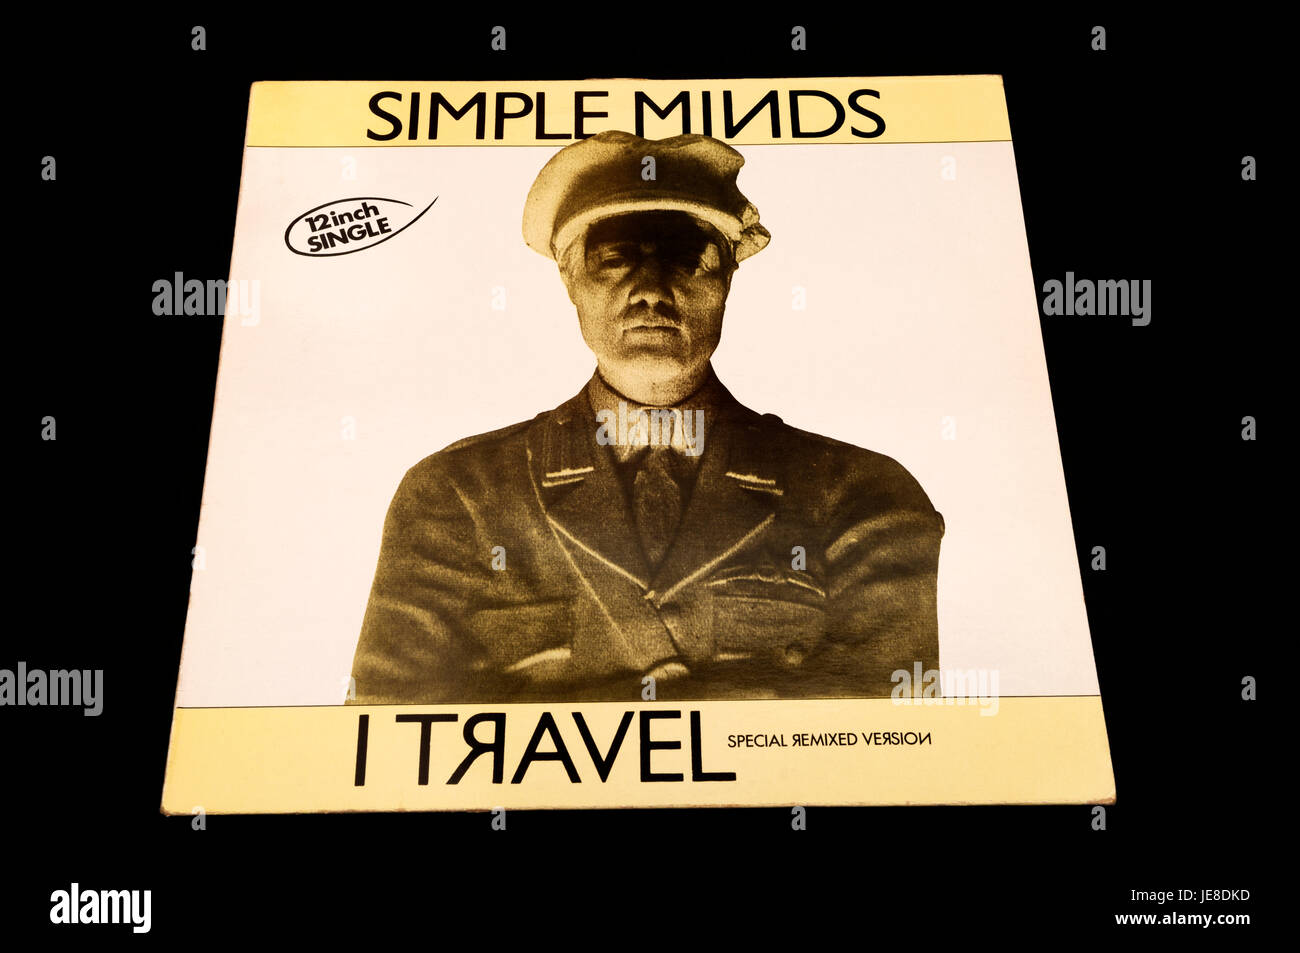 Simple Minds Travel 12 nch single - Stock Image